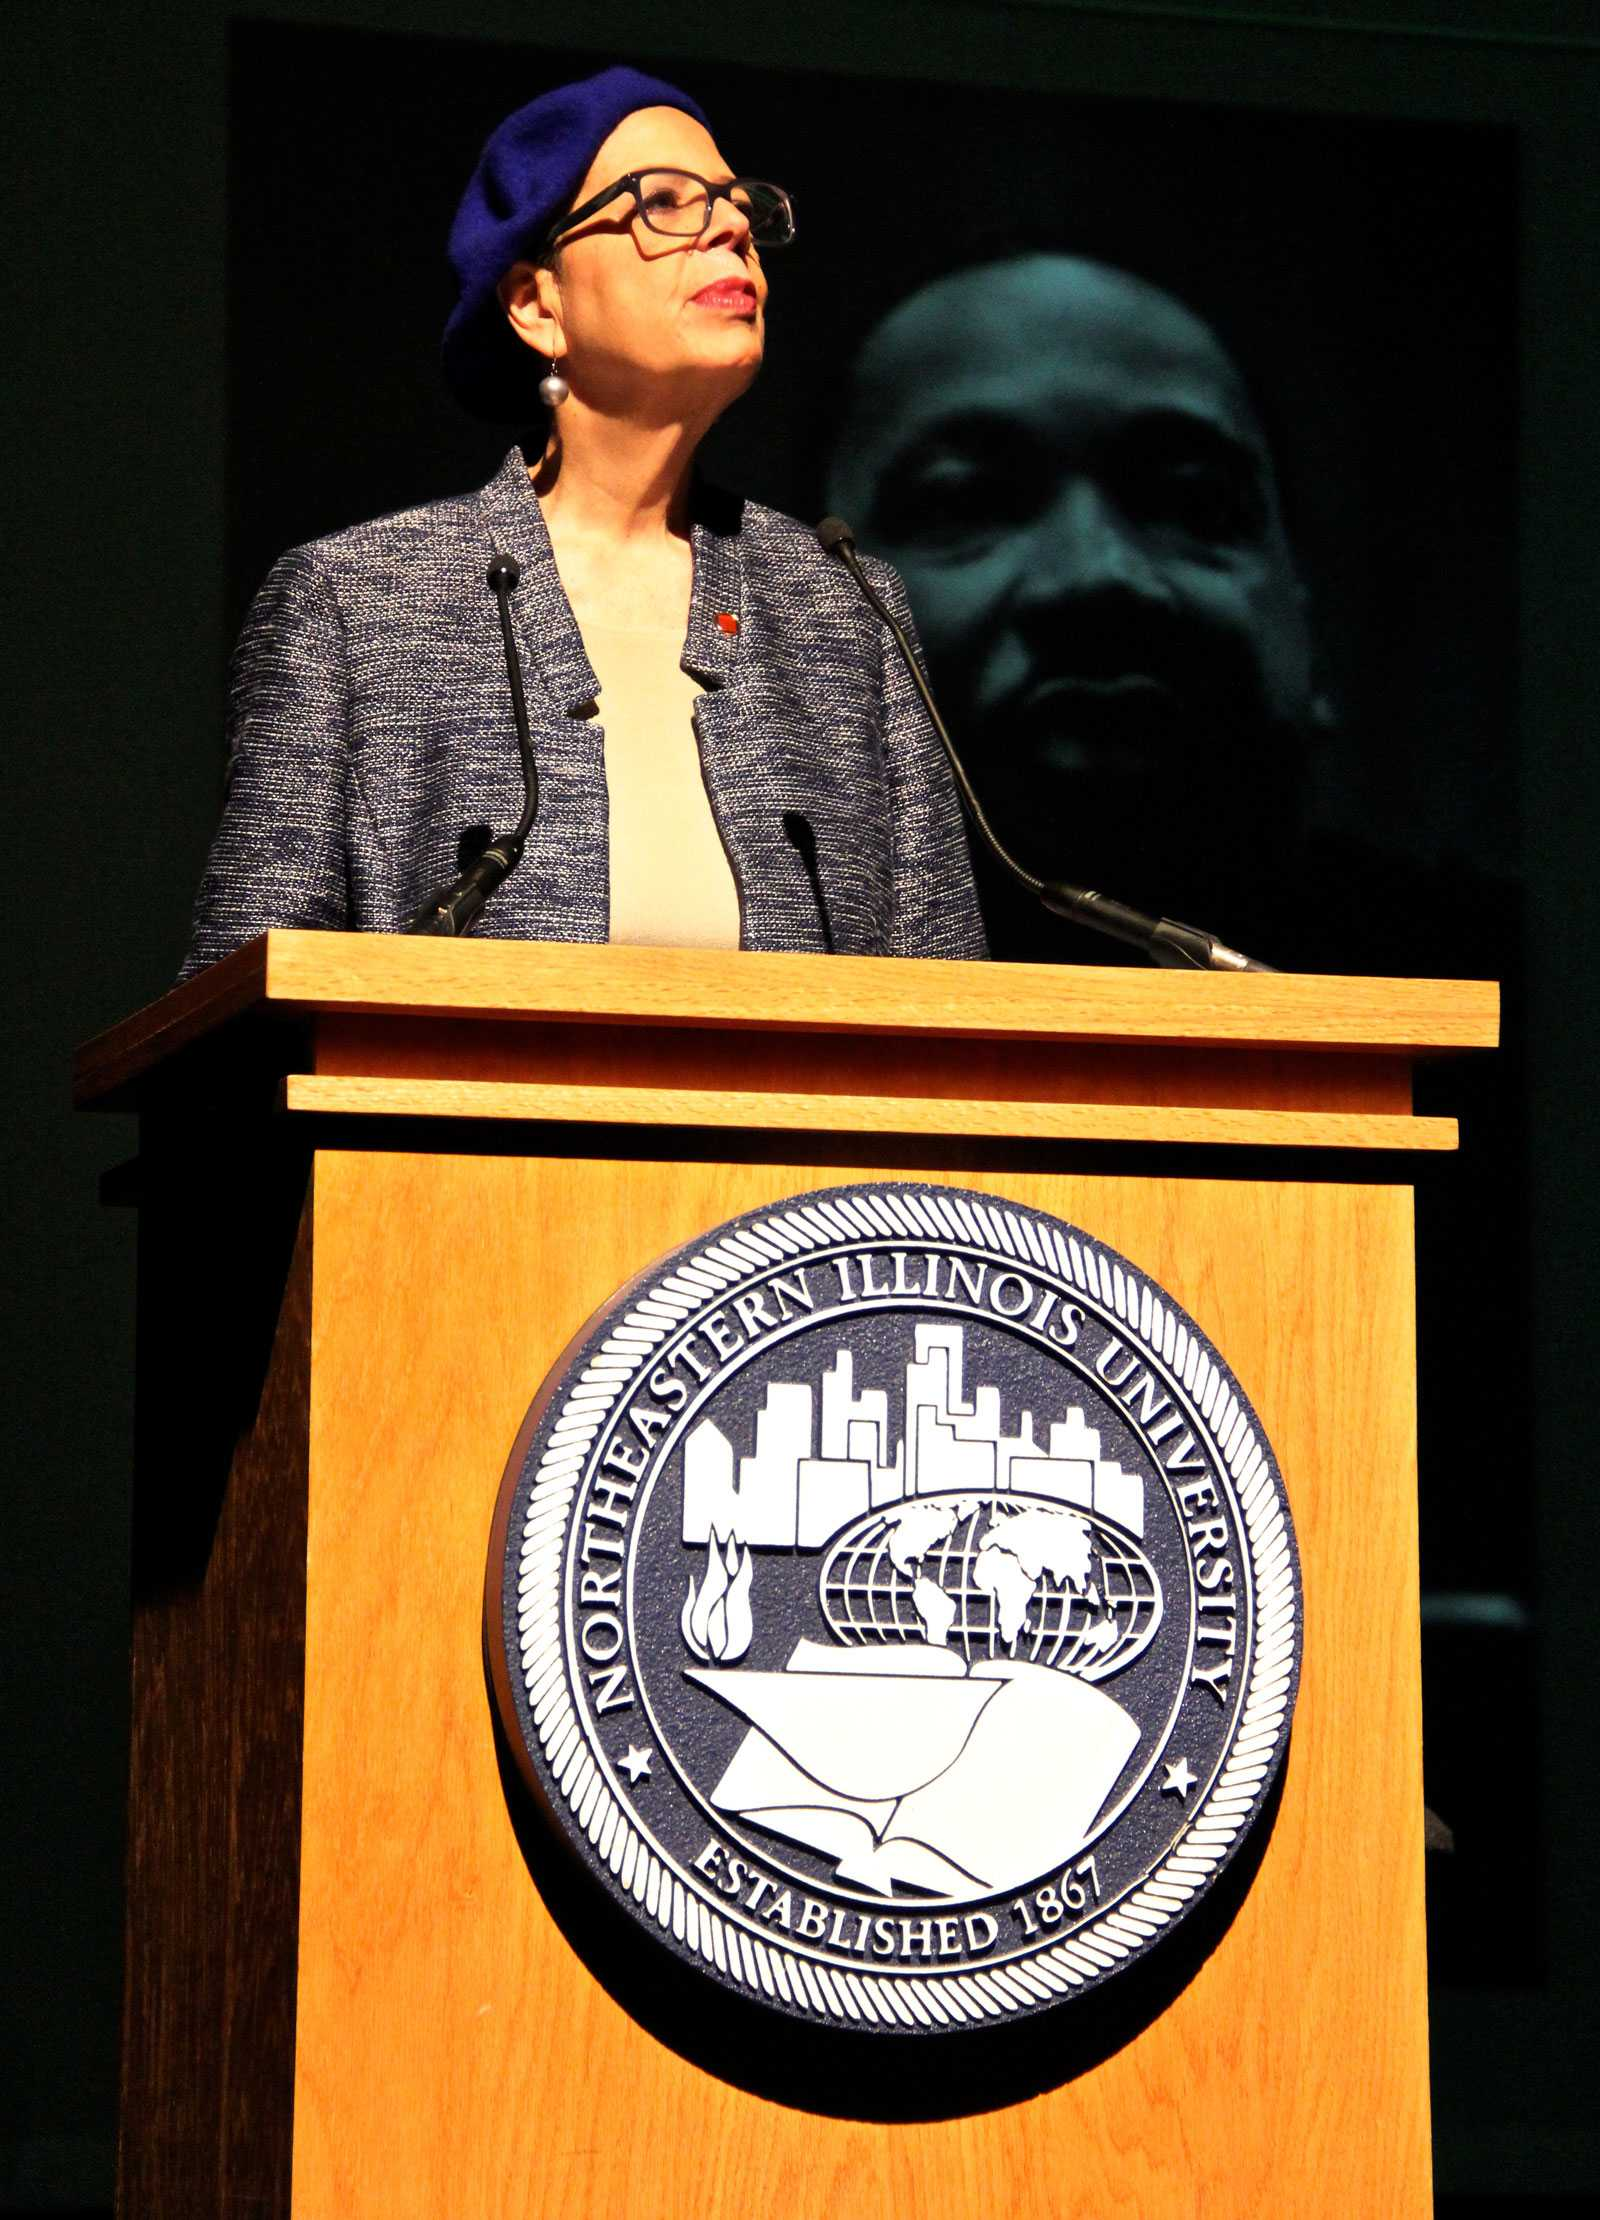 Karen Lewis, president of the Chicago Teacher's Union and NEIU alumna, spoke about the vision of Dr. Martin Luther King, Jr. and the meaning of social justice.